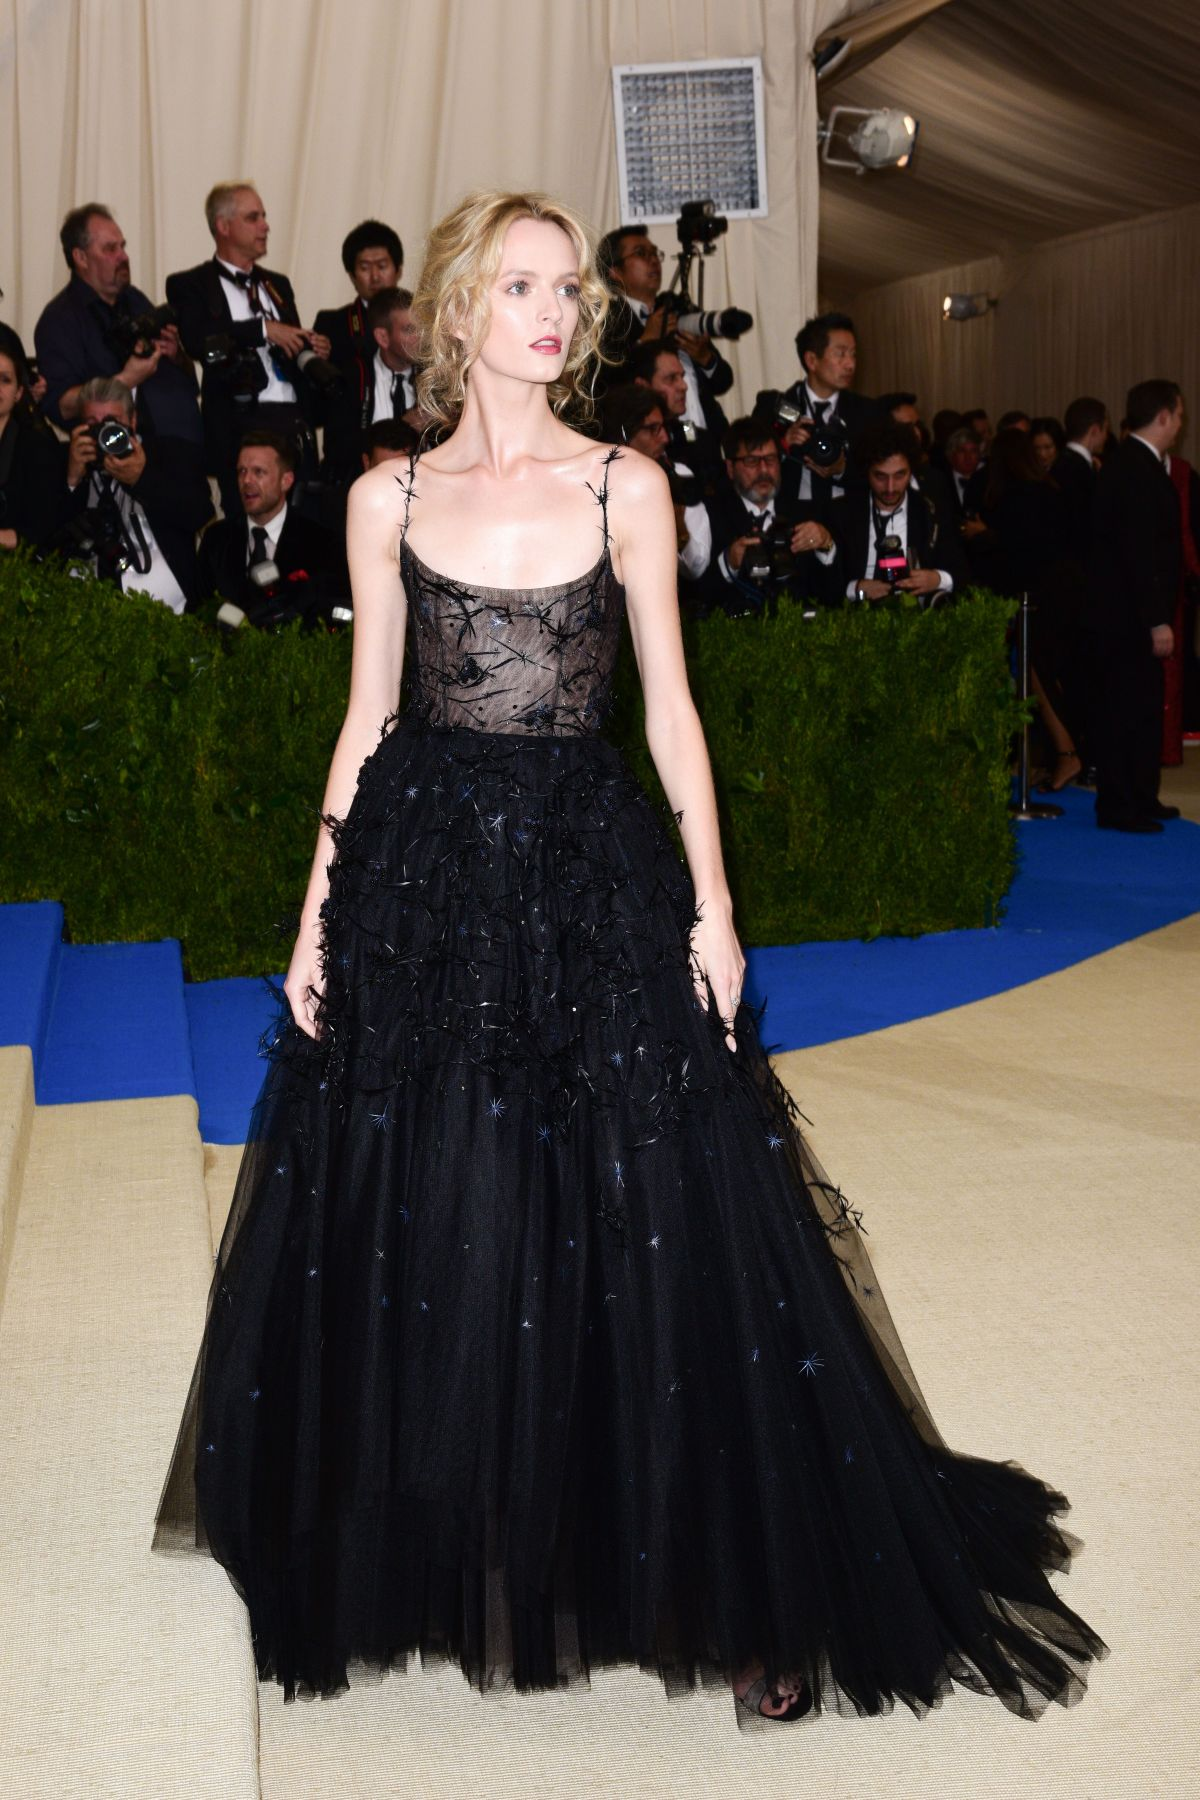 Image result for Daria Strokous at met gala